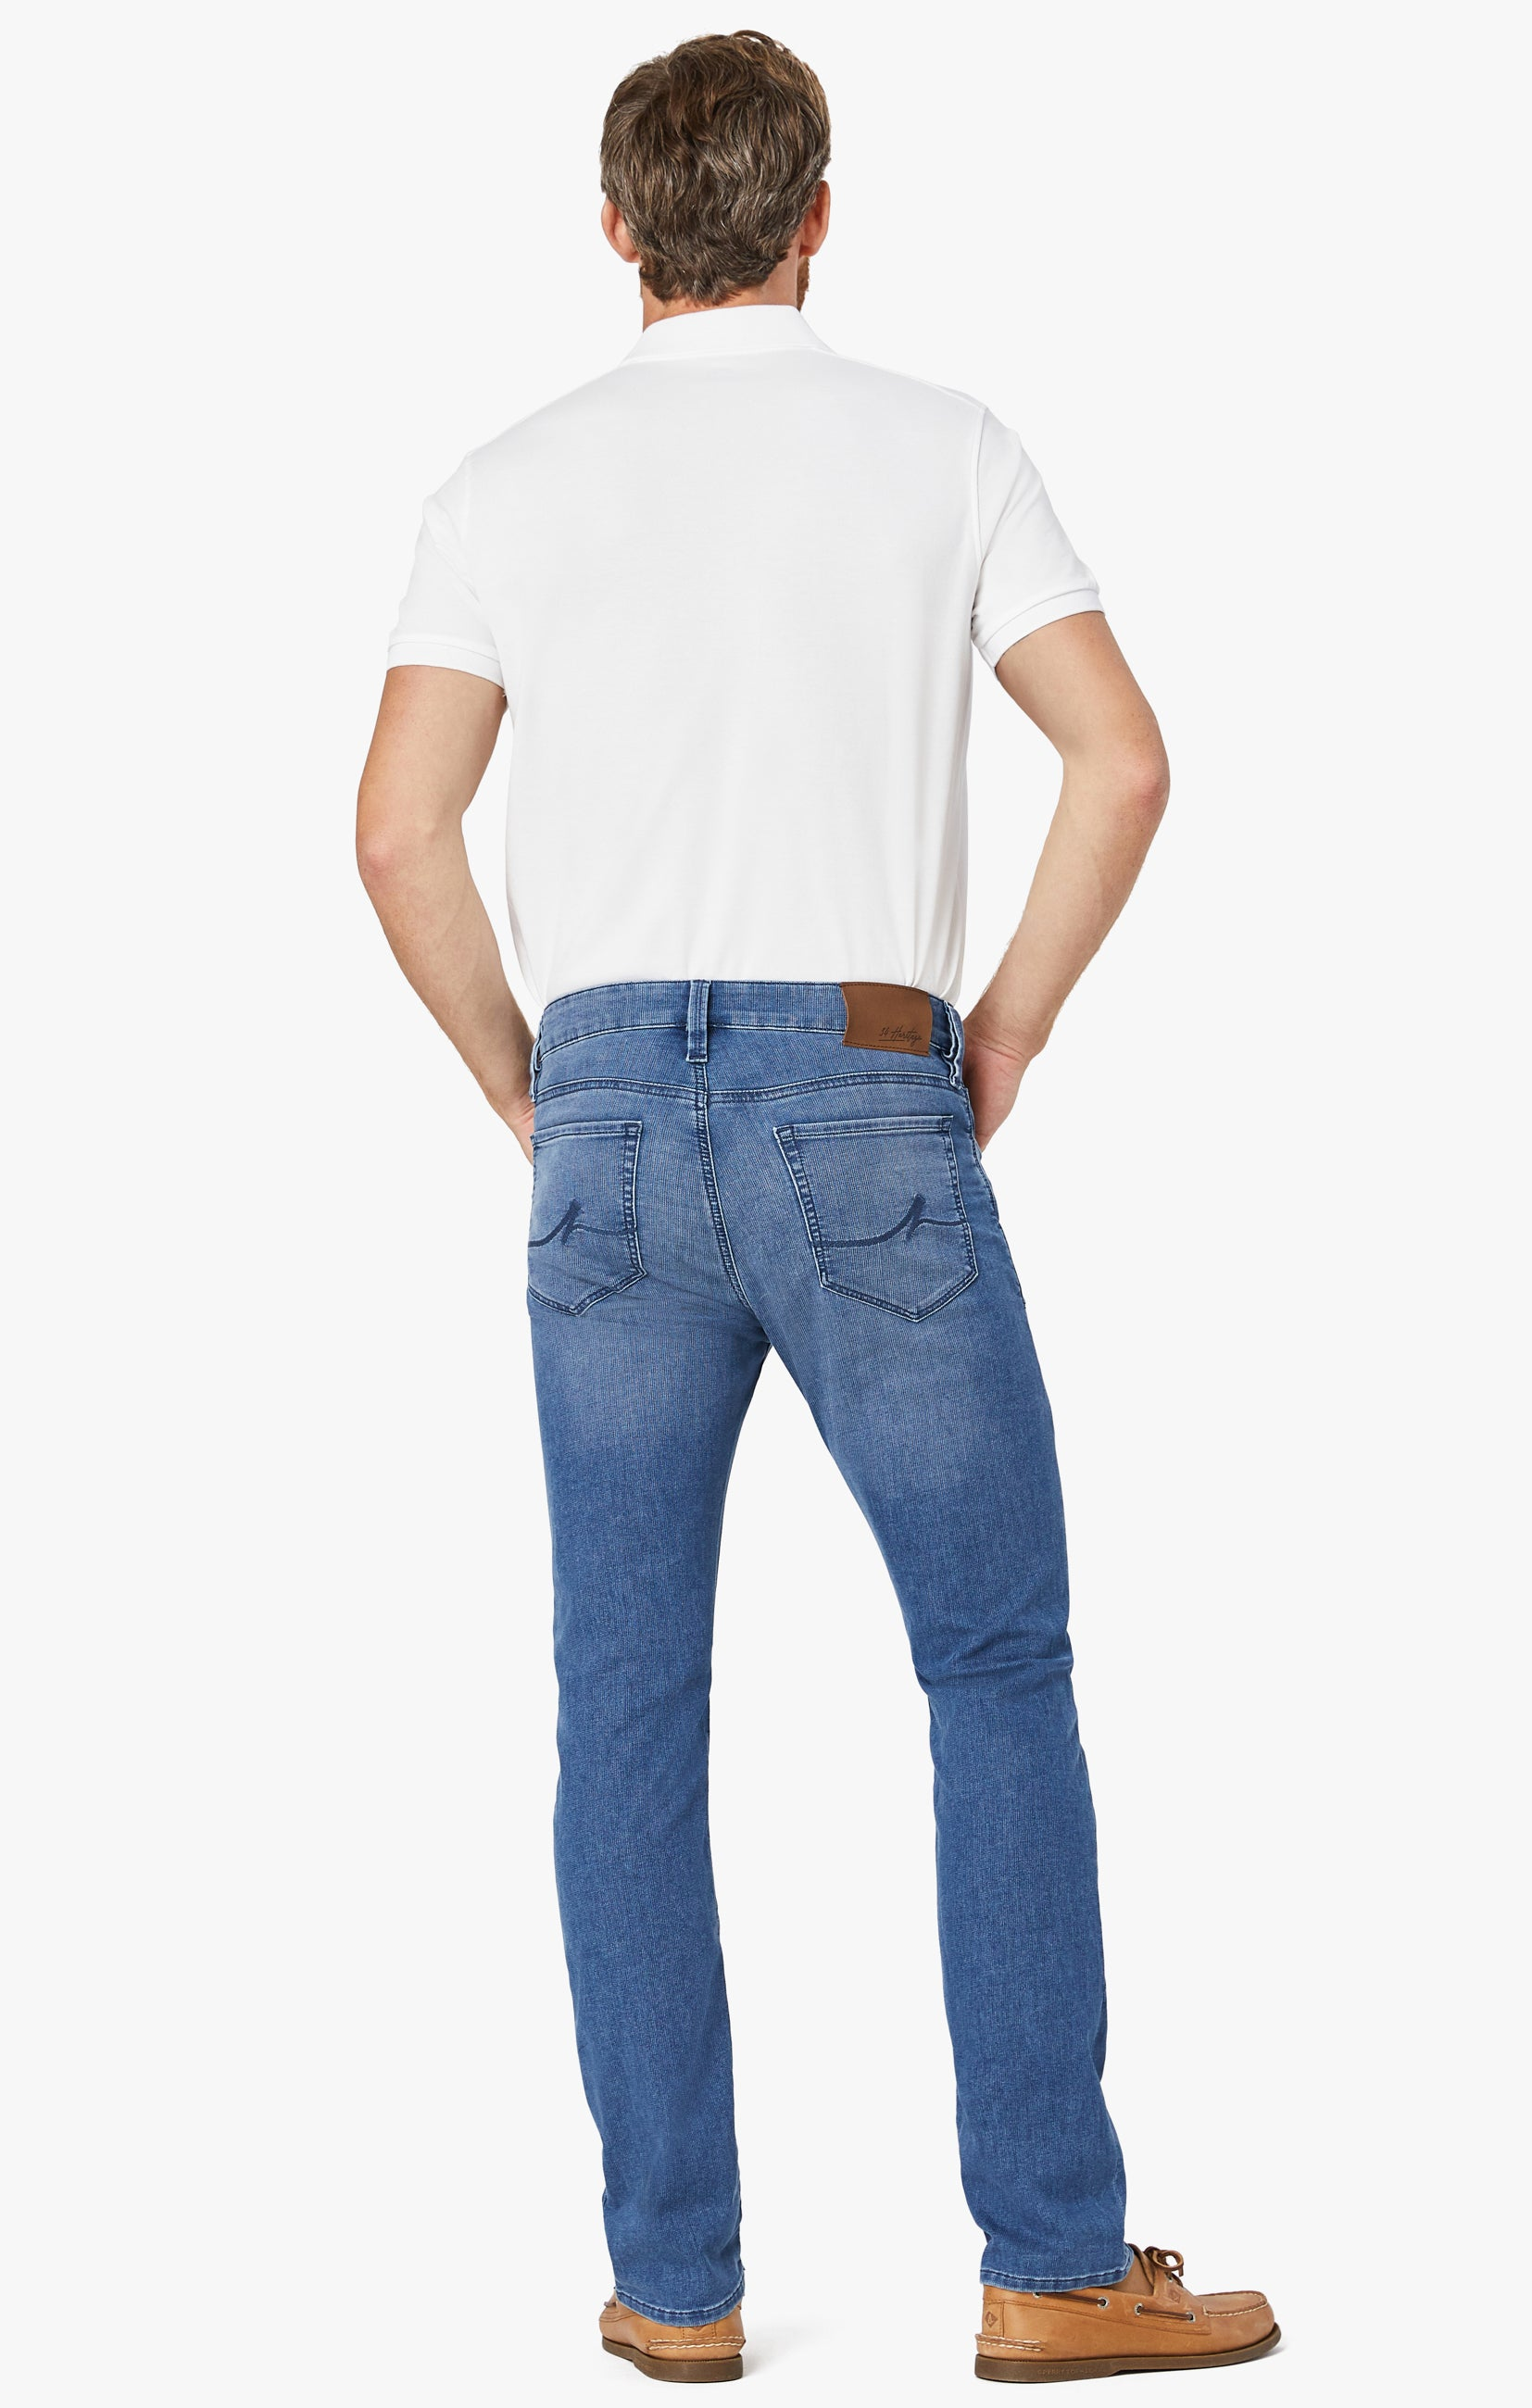 Courage Straight Leg Jeans In Light Indigo Sporty Image 4